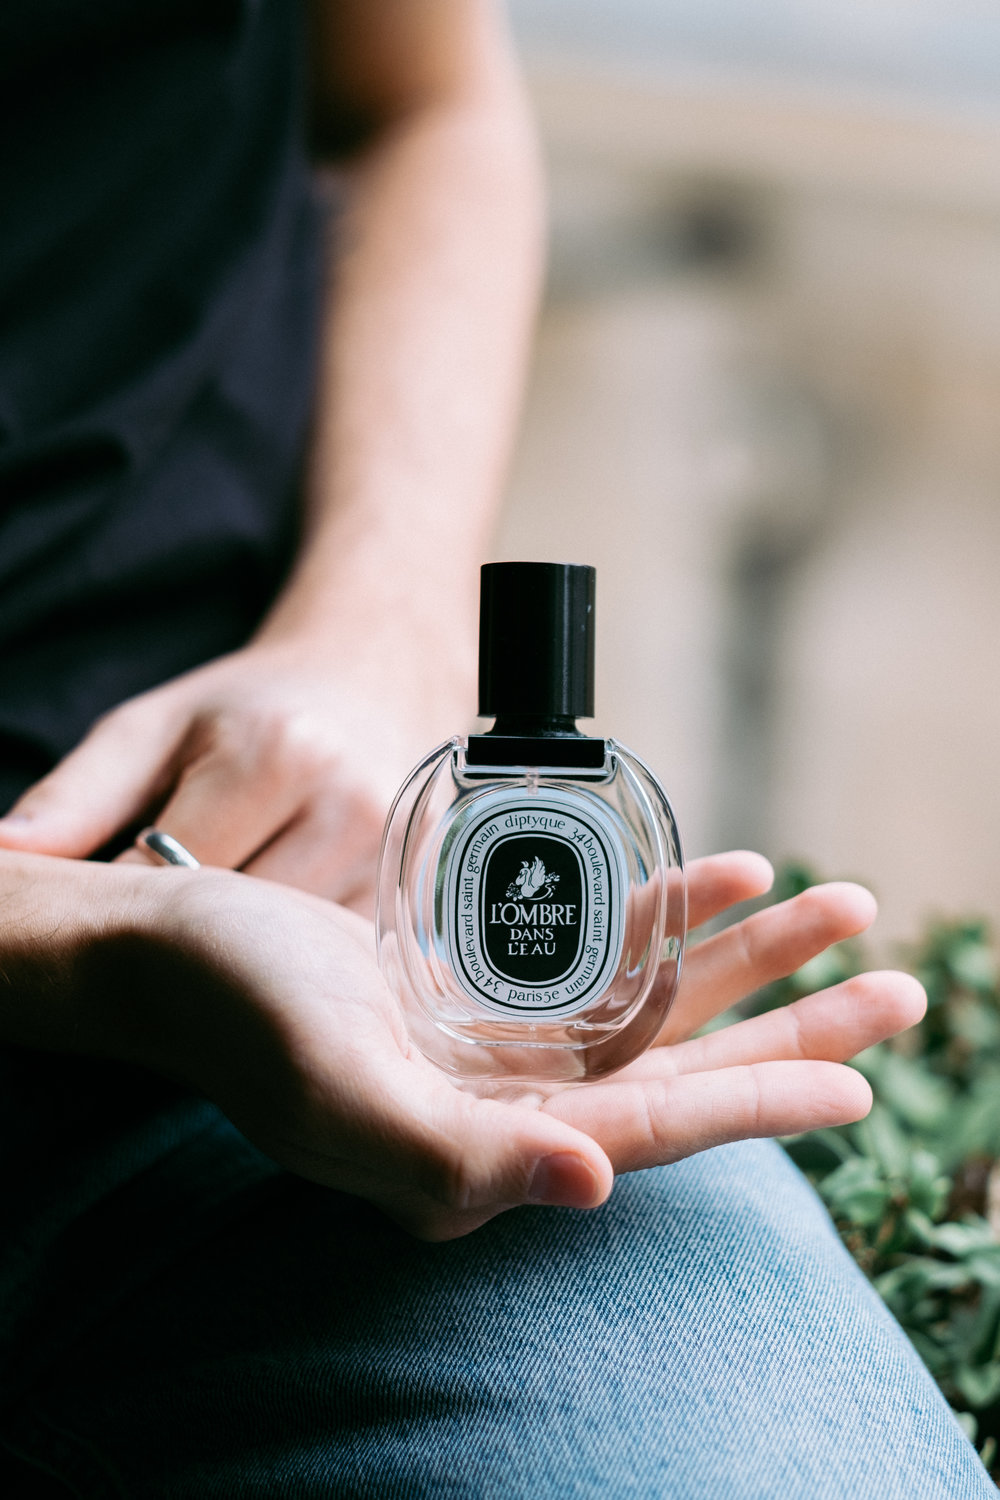 Next scent to introduce is a fragrance for every day by one of my favourite brands  Diptyque . Floral  L'Ombre Dans L'eau  deepens into a sensuous heart of juicy notes of currant and rose.